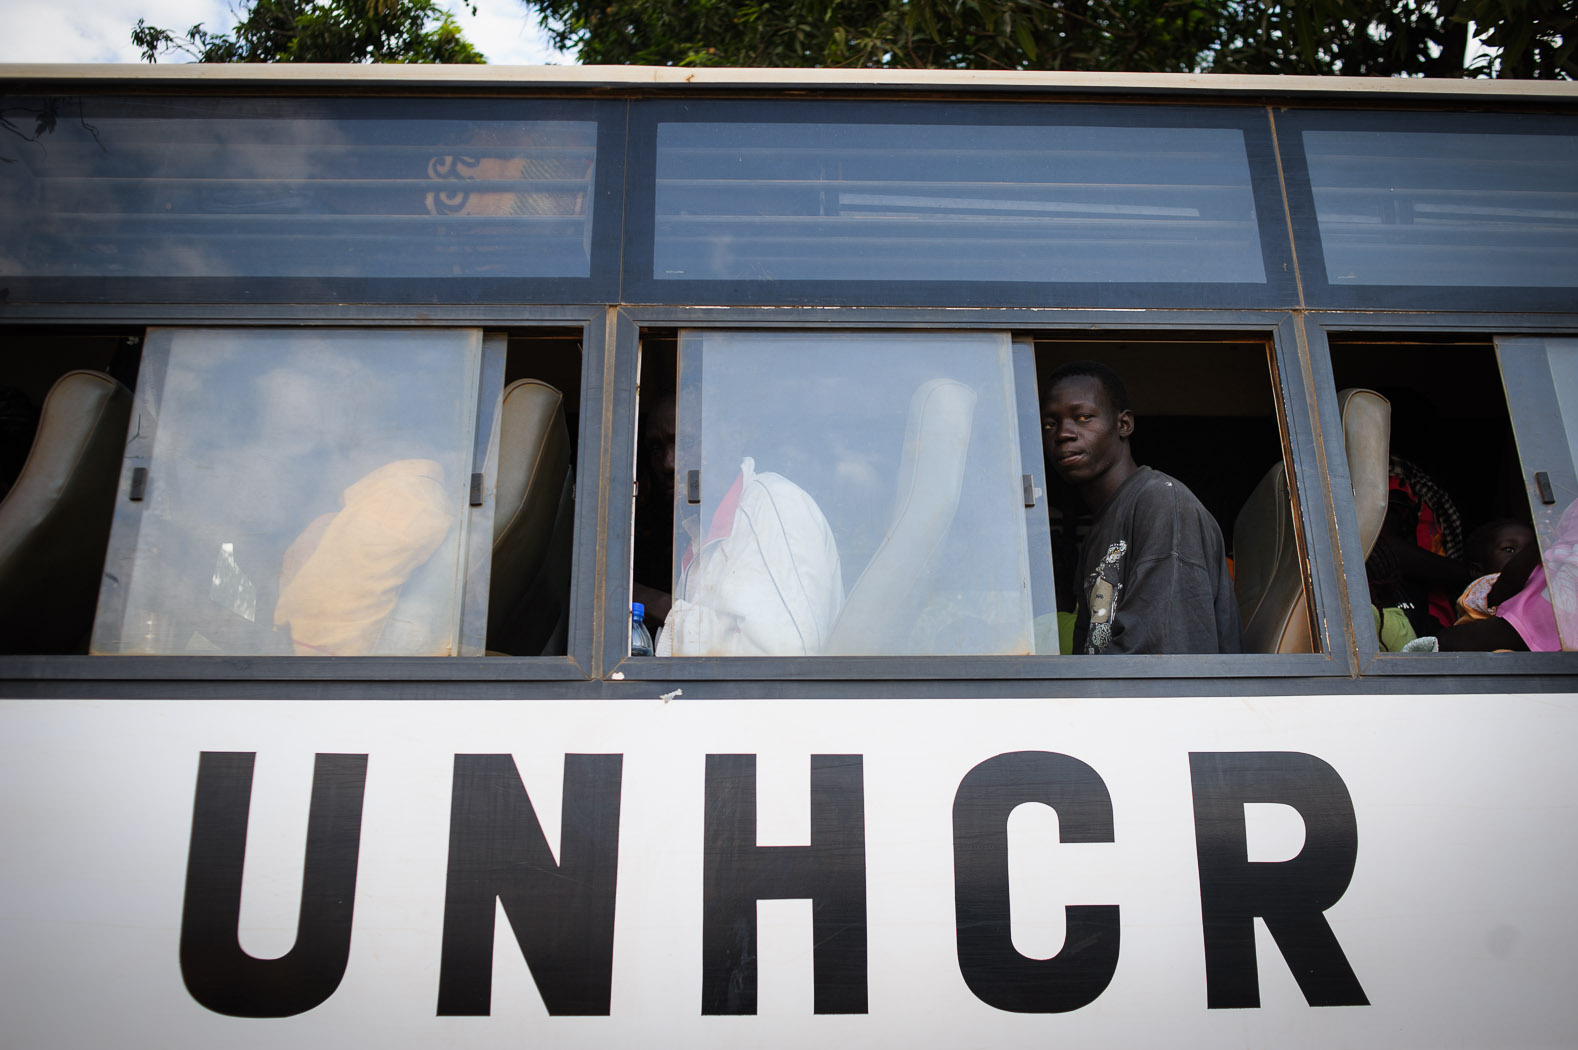 Thousands of South Sudanese moved en-masse from the north, including large populations who had installed themselves in the capital, Khartoum, to the south ahead of the referendum.